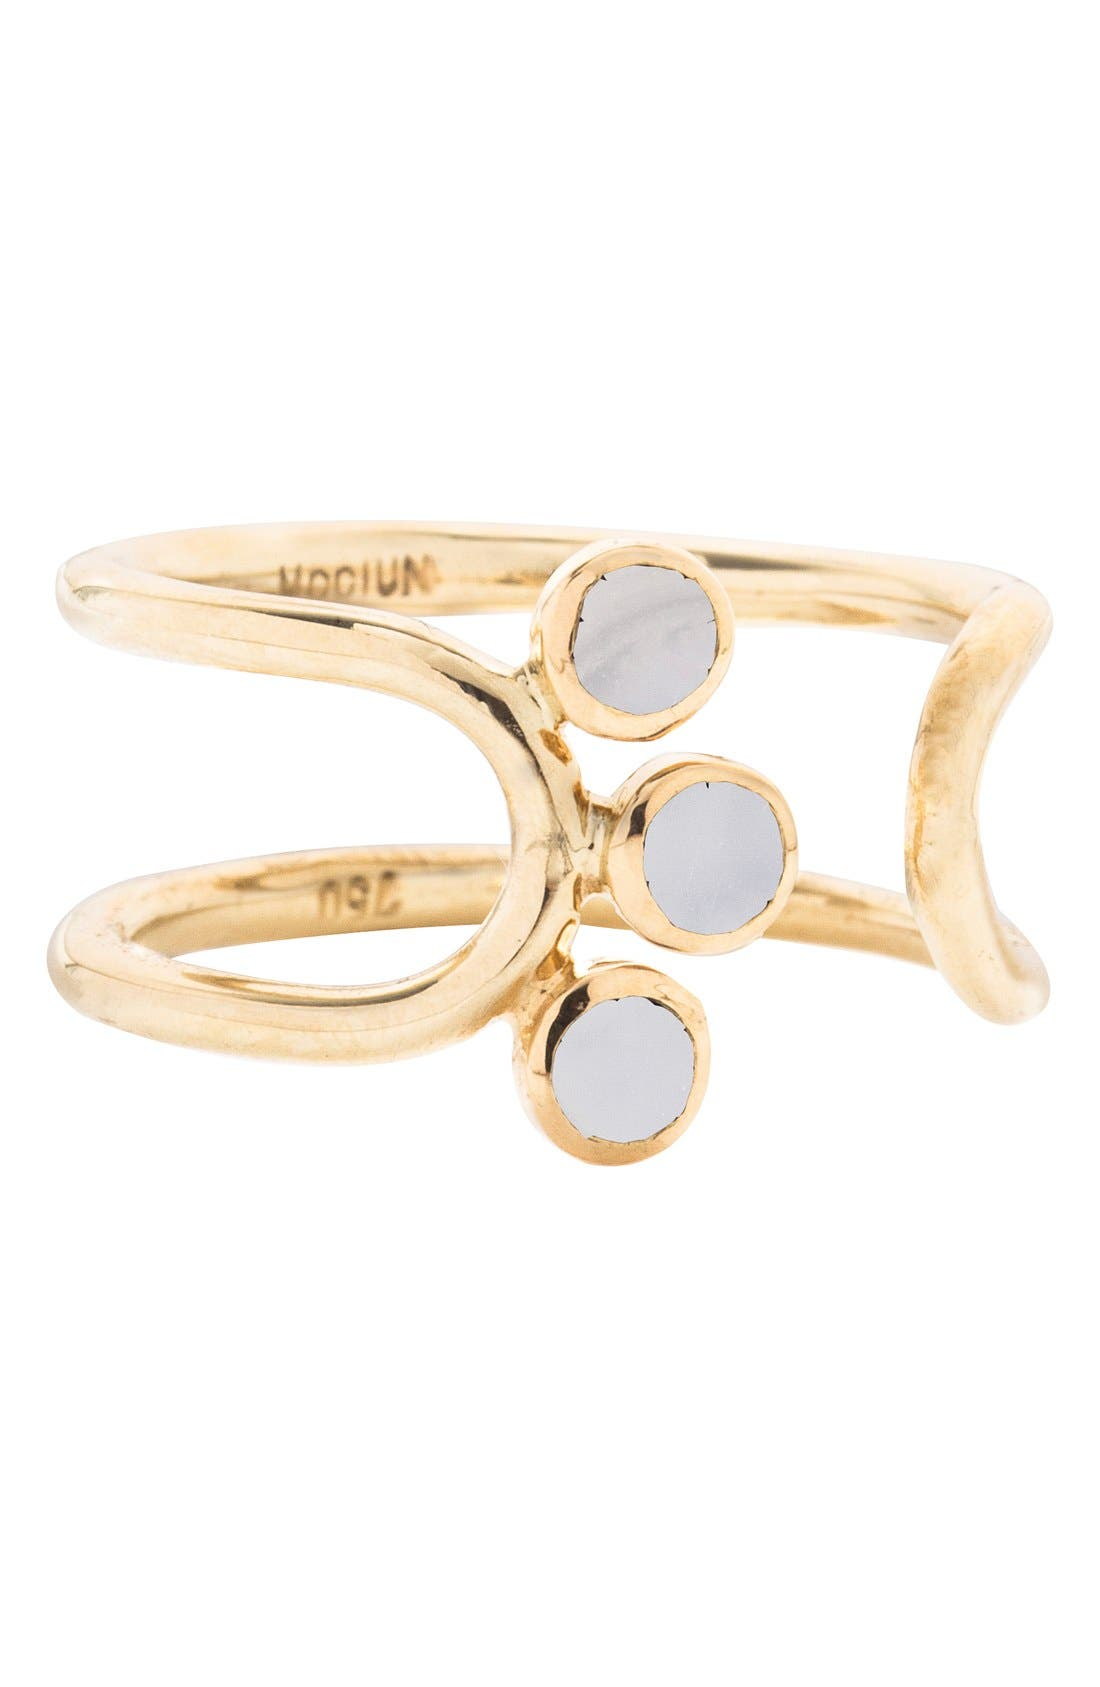 MOCIUN 'Triplet' Moonstone Open Ring